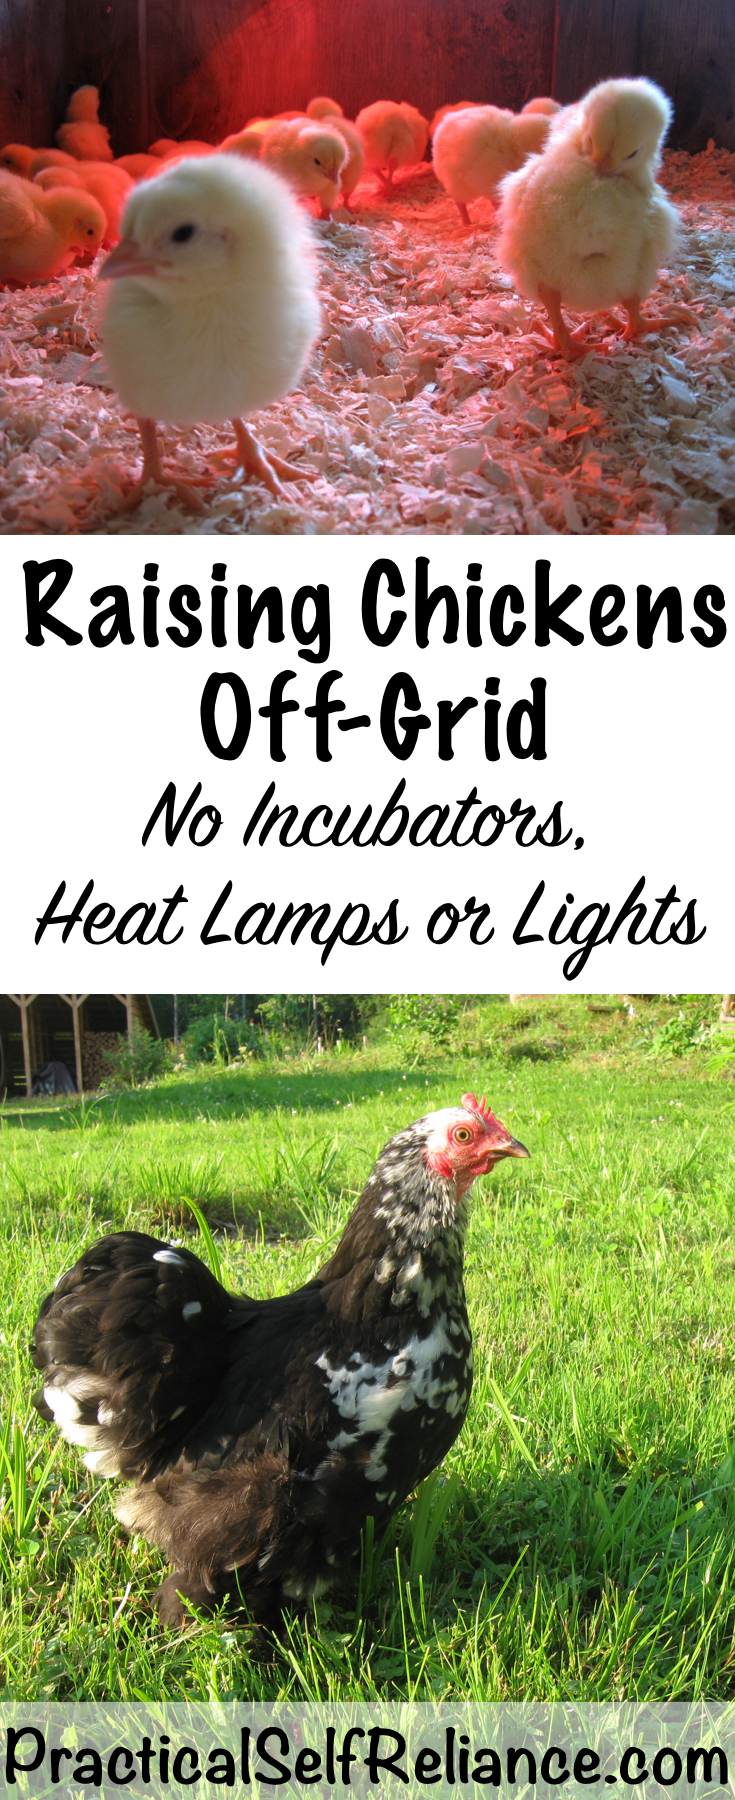 Raising Chickens Off-Grid ~ No Electricity, lights, incubators or heat